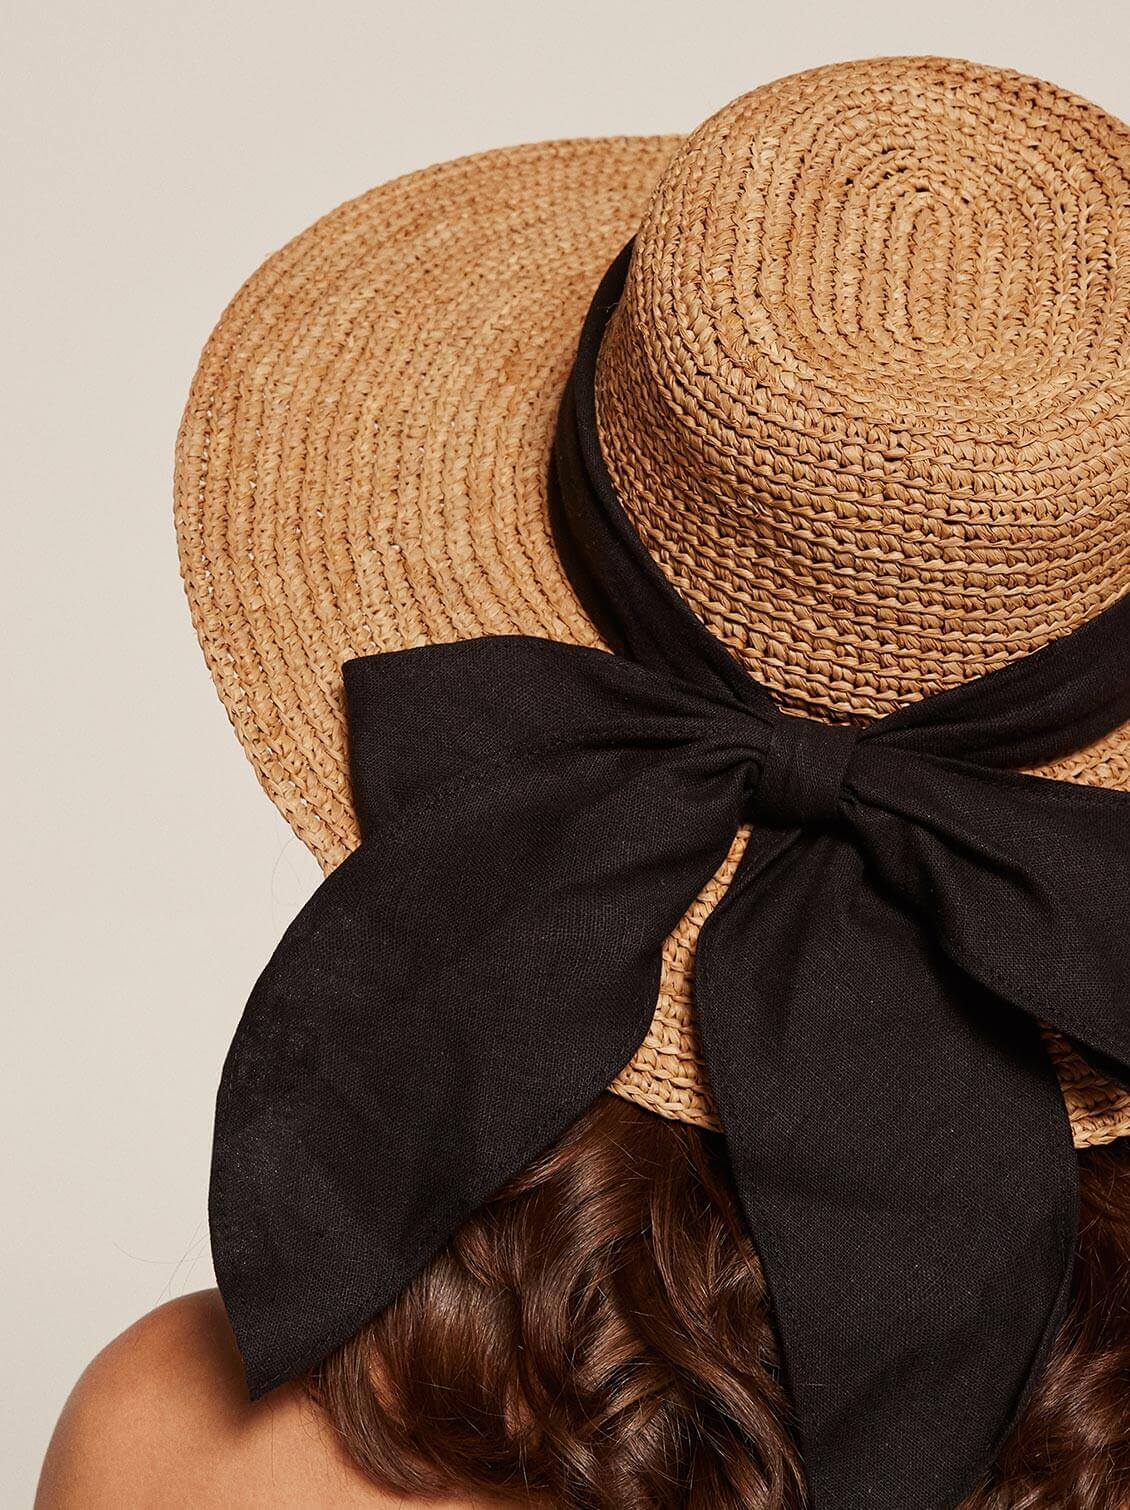 Reformation straw hat